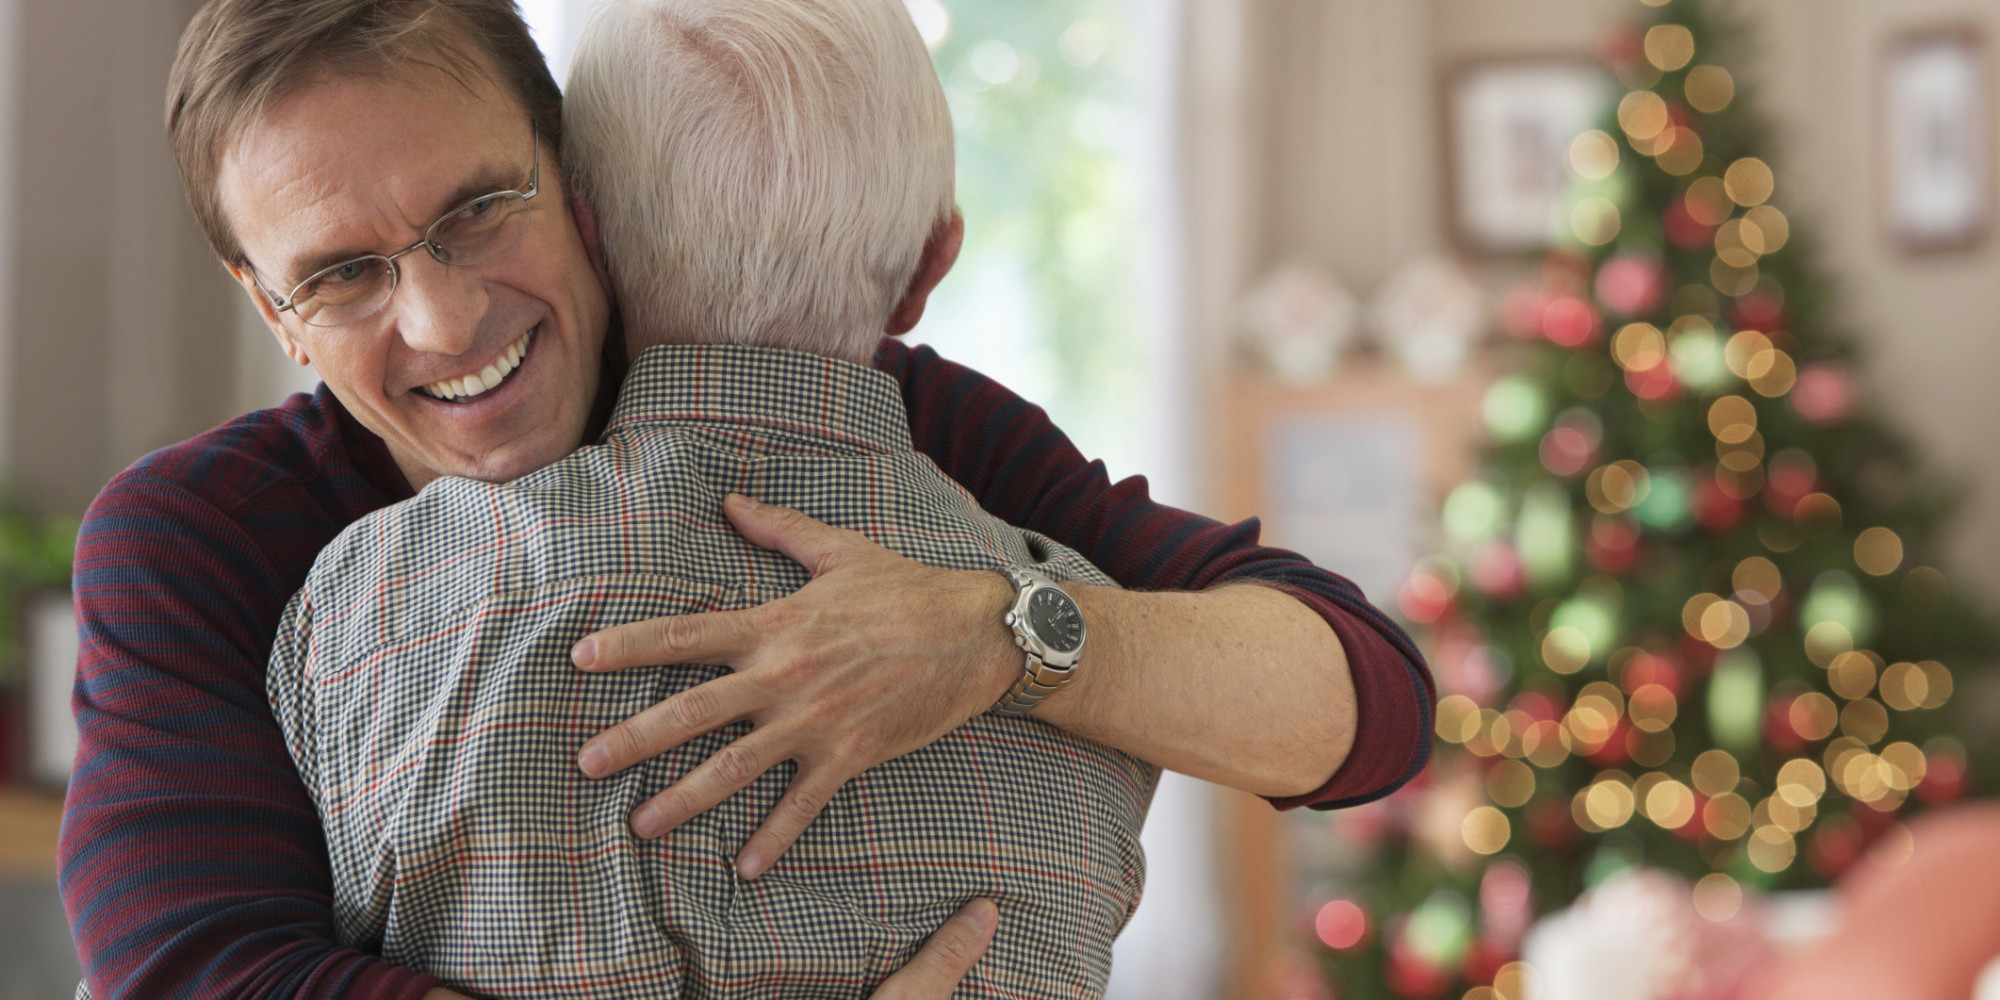 Gift Ideas For People With Dementia: Scrap Books, CDs And